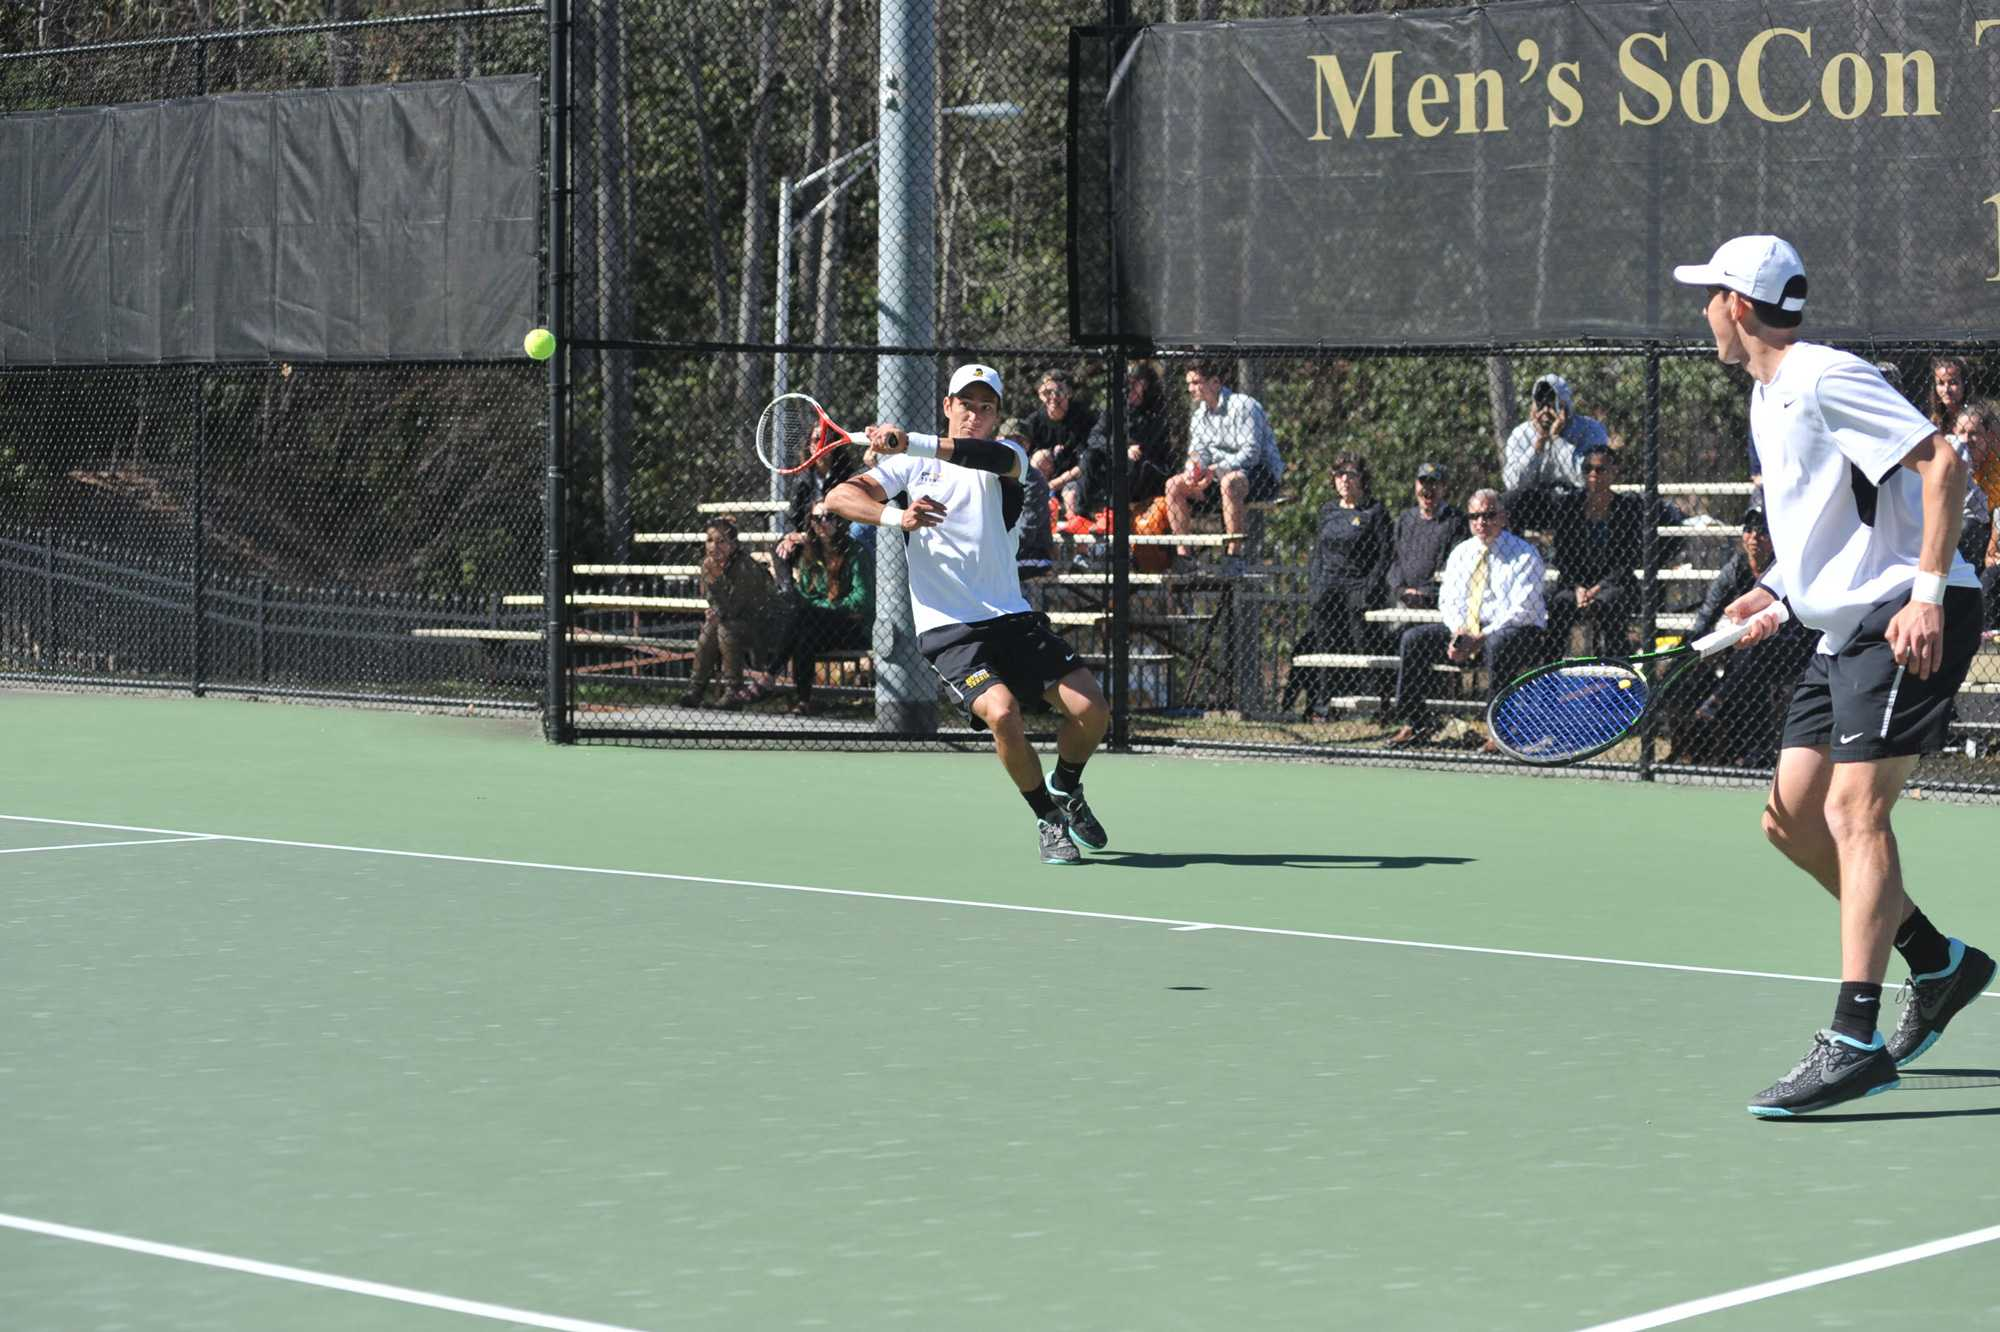 The last match point at ASU